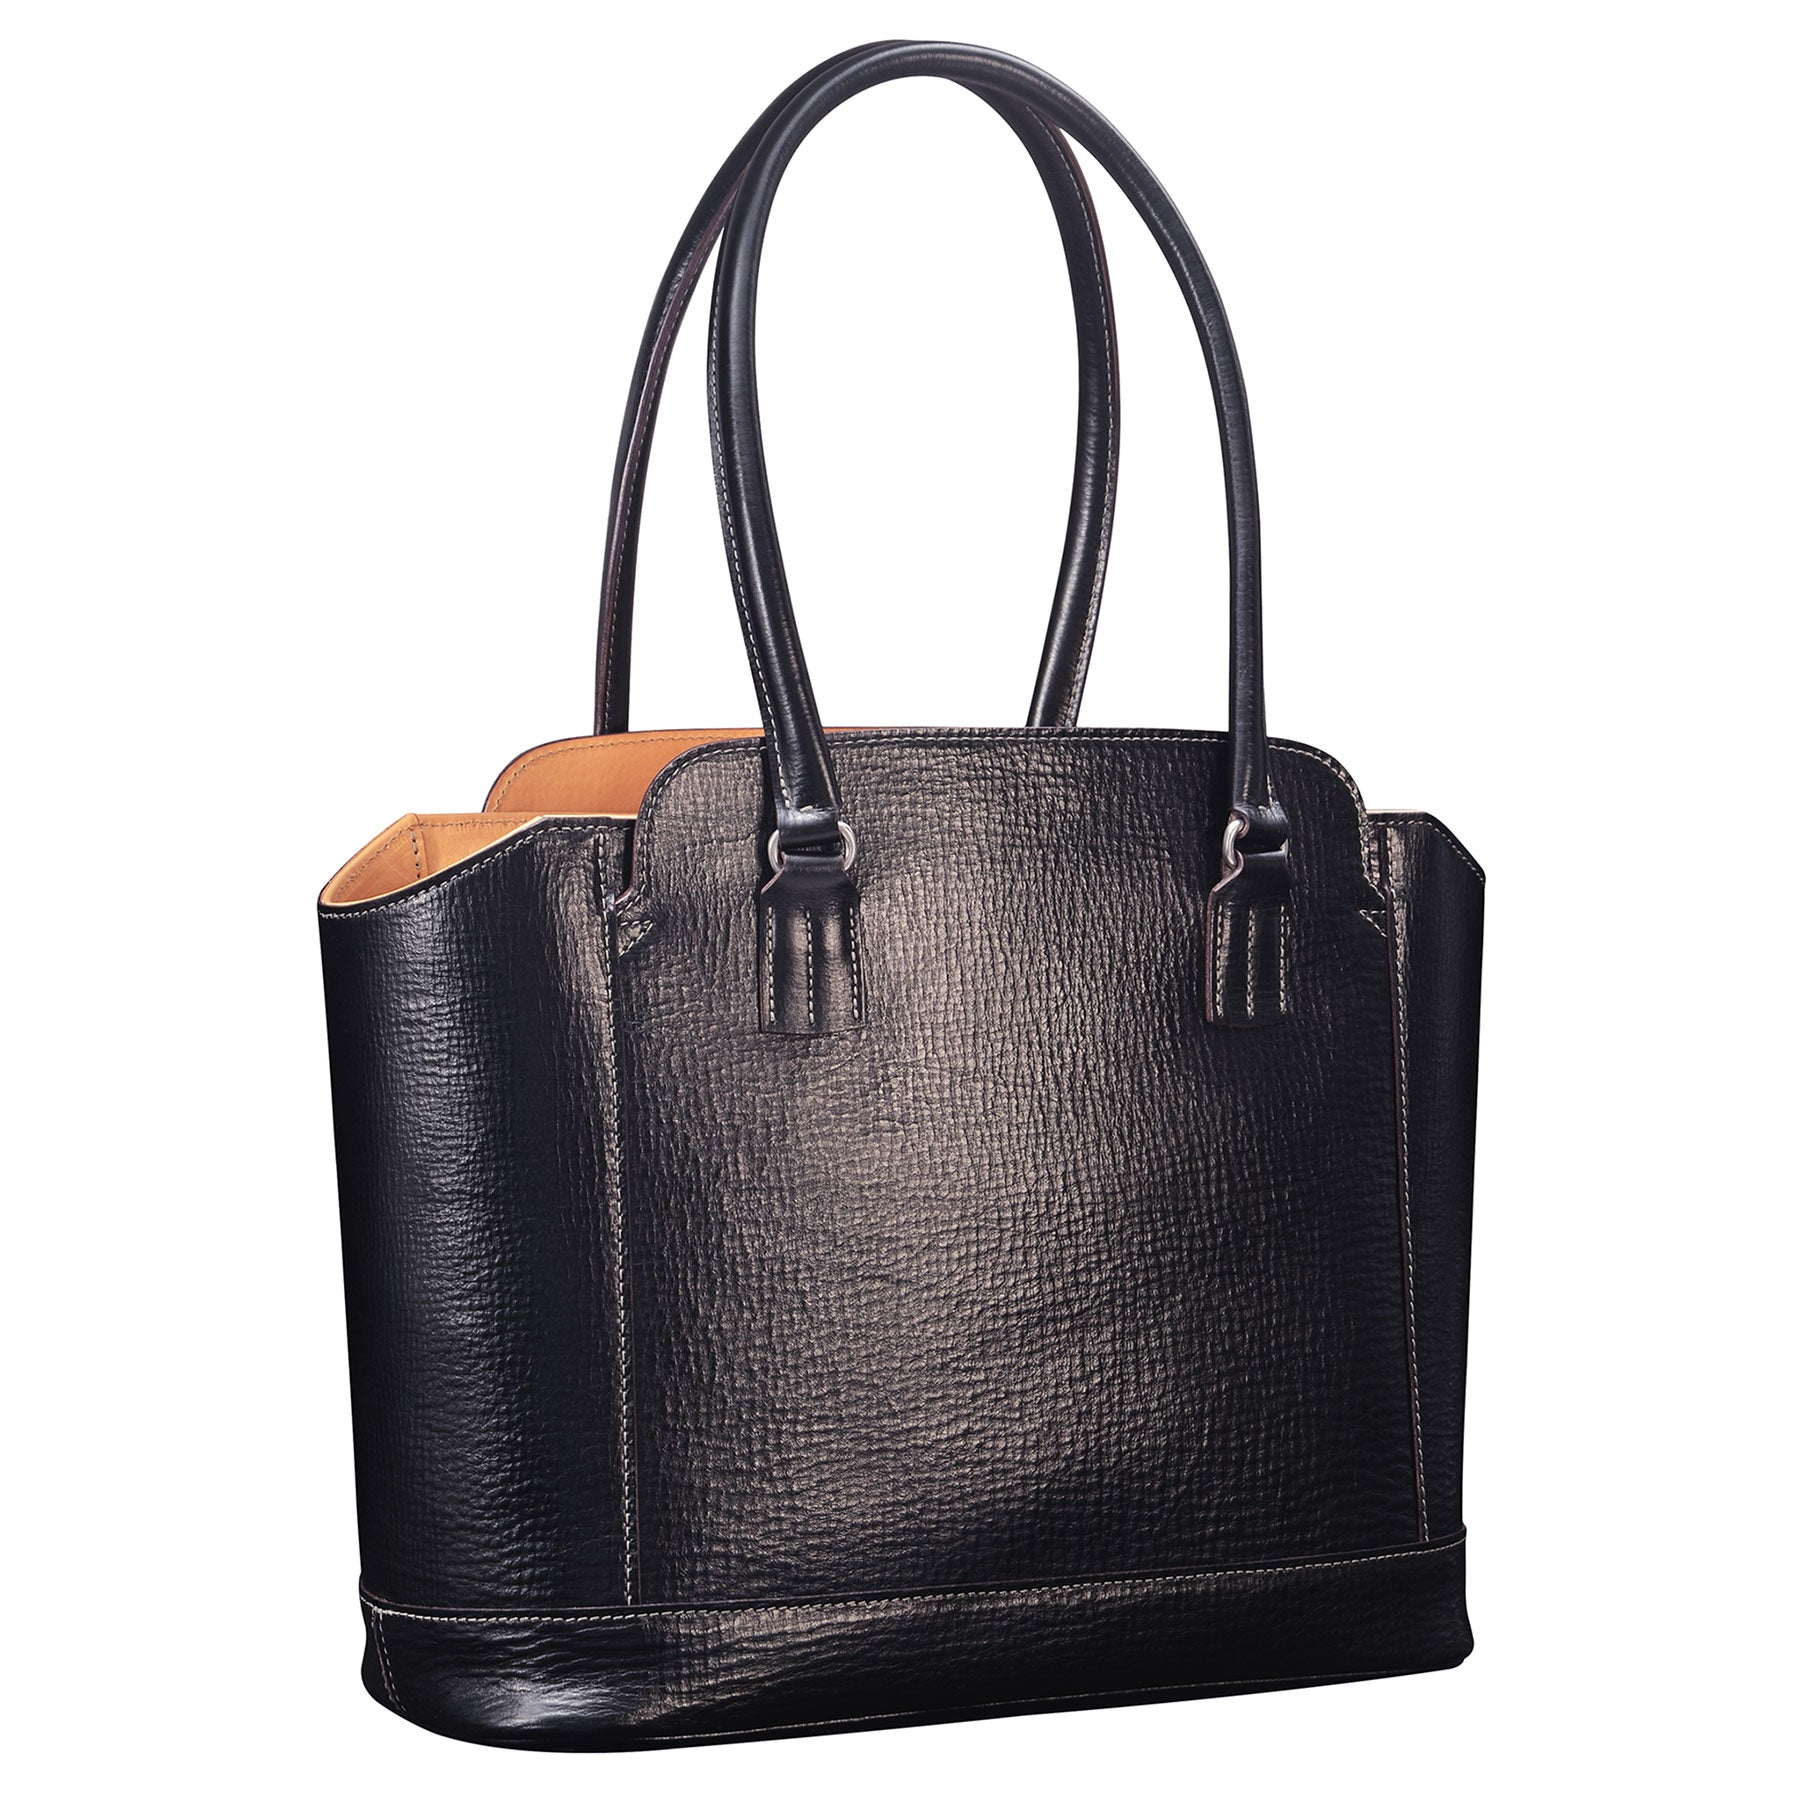 Glaser Designs City Tote with Long Handles. Hand colored Black vegetable tanned leather. Solid brass hardware. Made to measure, custom sizes.